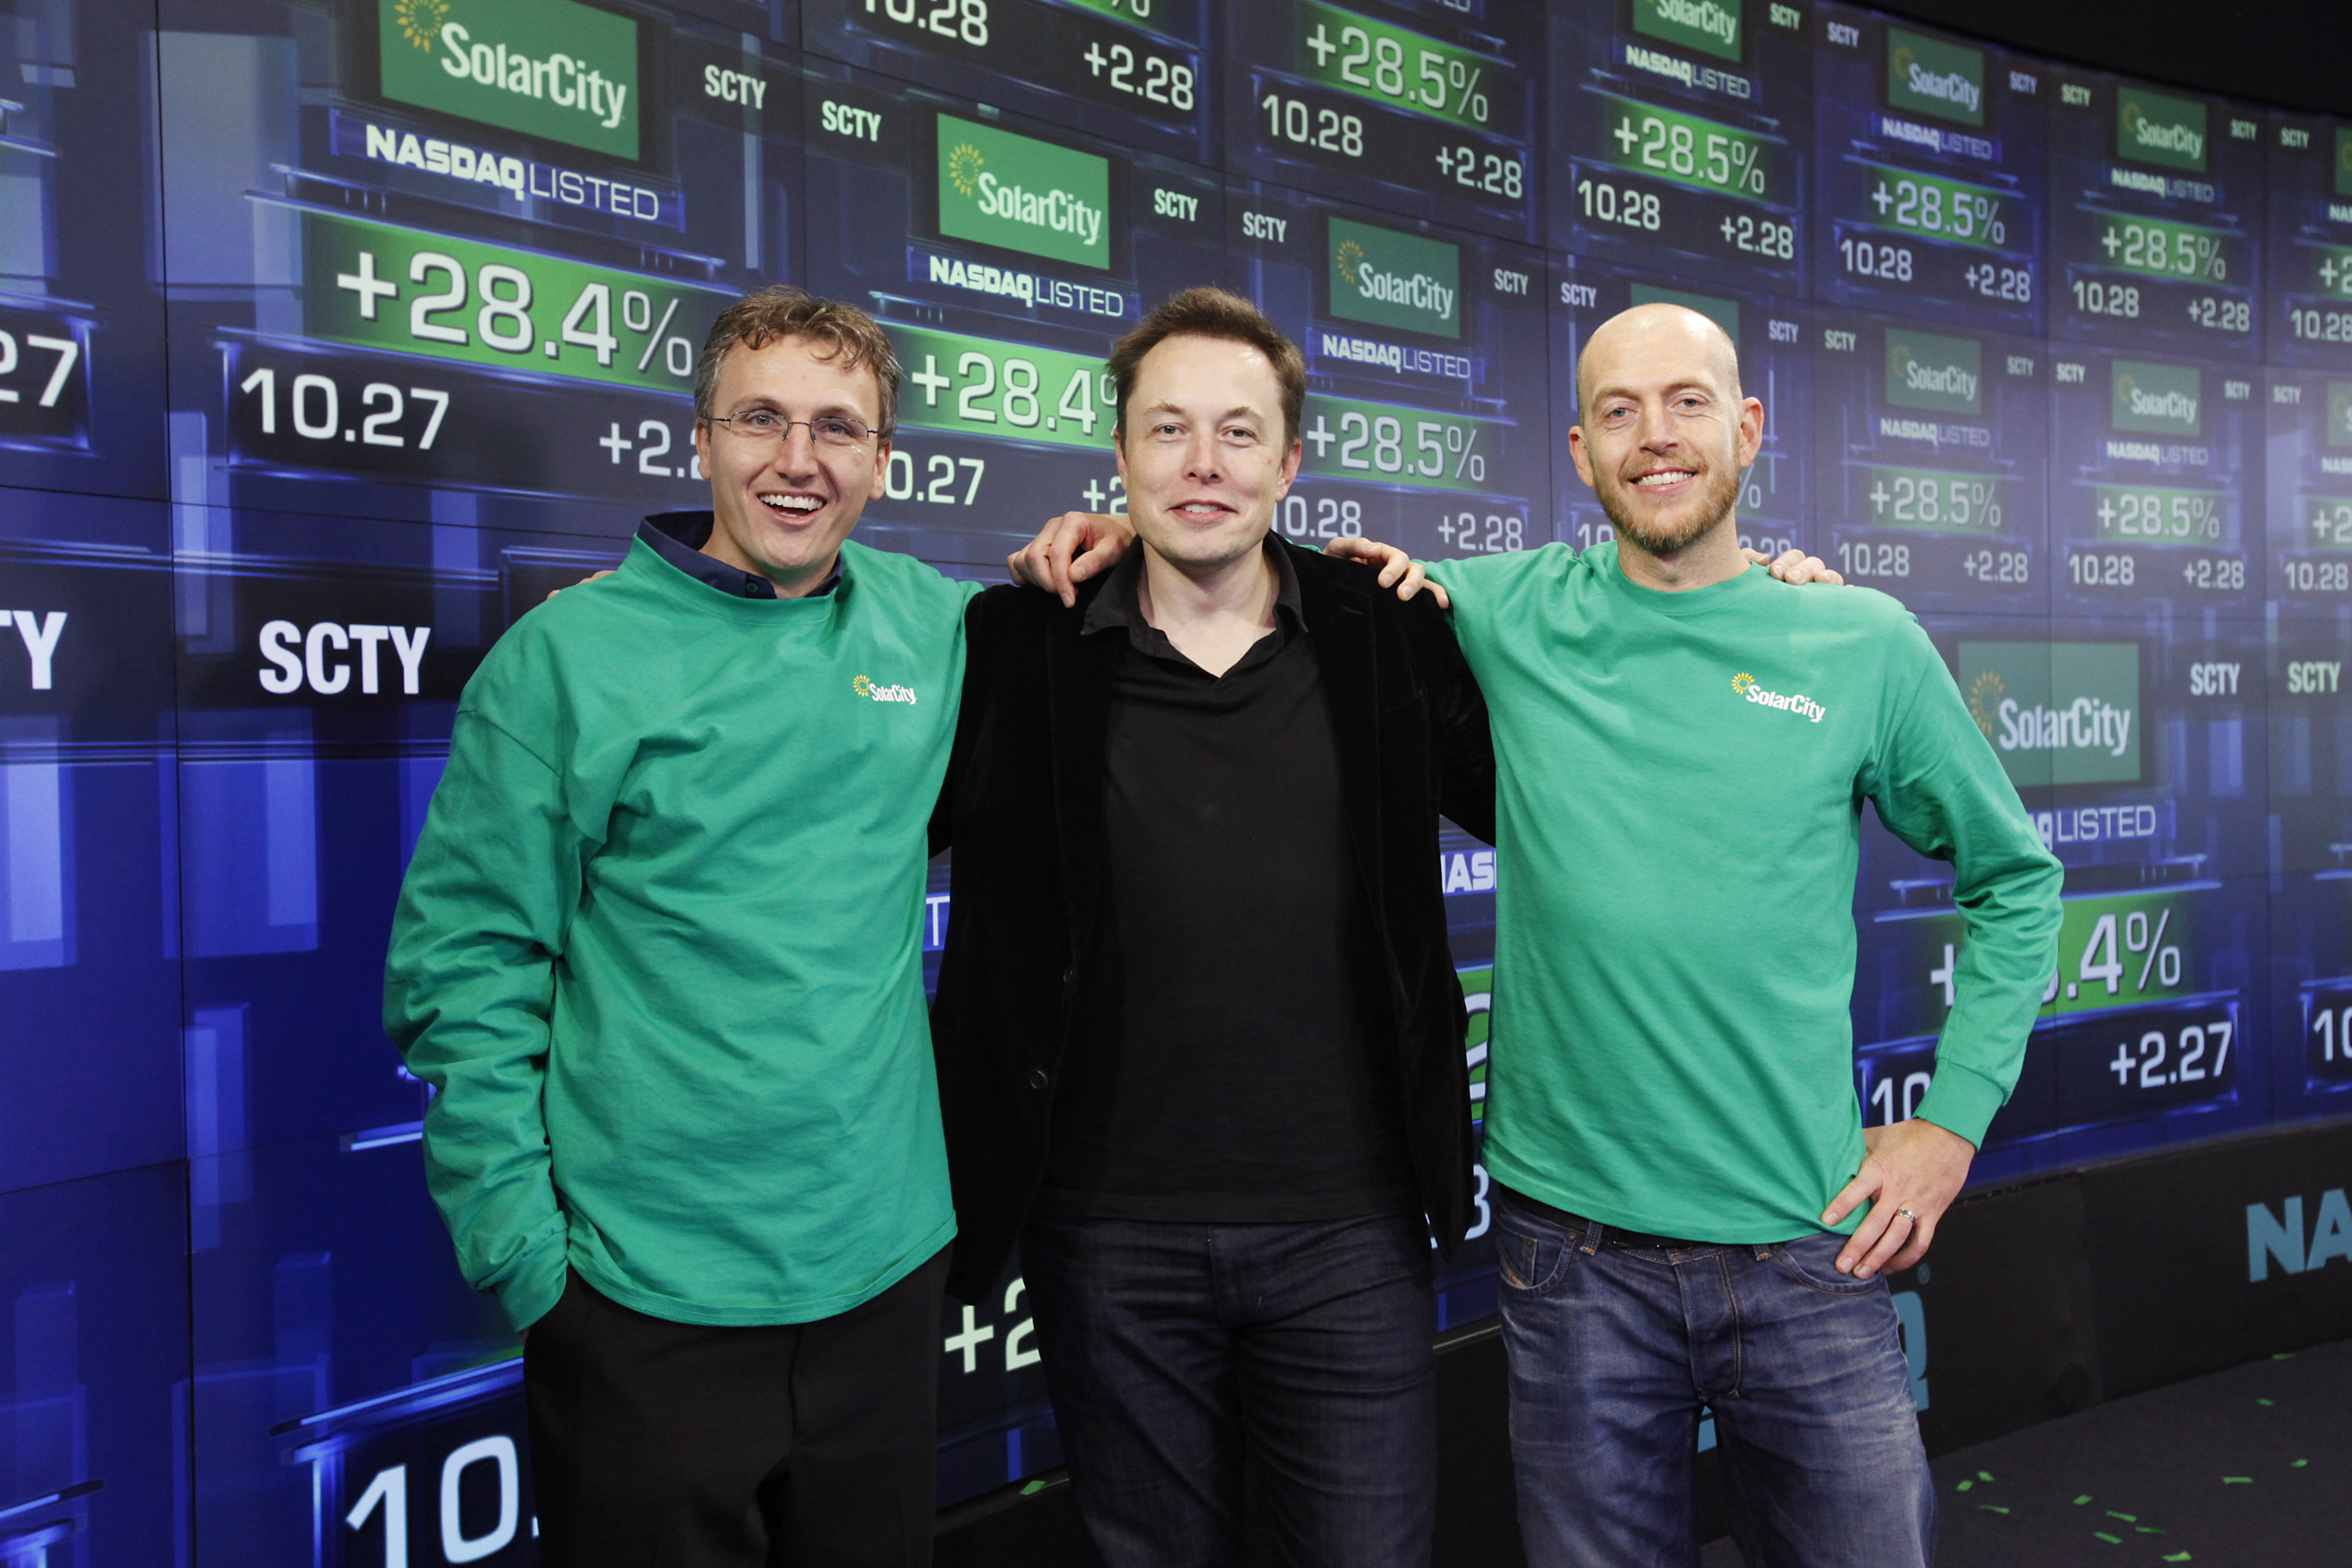 IMAGE DISTRIBUTED FOR SOLARCITY - SolarCity Founder & CEO Lyndon Rive, Chairman Elon Musk, and SolarCity Founder & COO Peter Rive celebrate the companyís IPO by posing for a photo at the NASDAQ Stock Market on Thursday, Dec. 13, 2012 in New York. SolarCity is a leader of distributed clean energy and will trade under SCTY. (Mark Von Holden/AP Images for SolarCity) ORG XMIT: CPA106